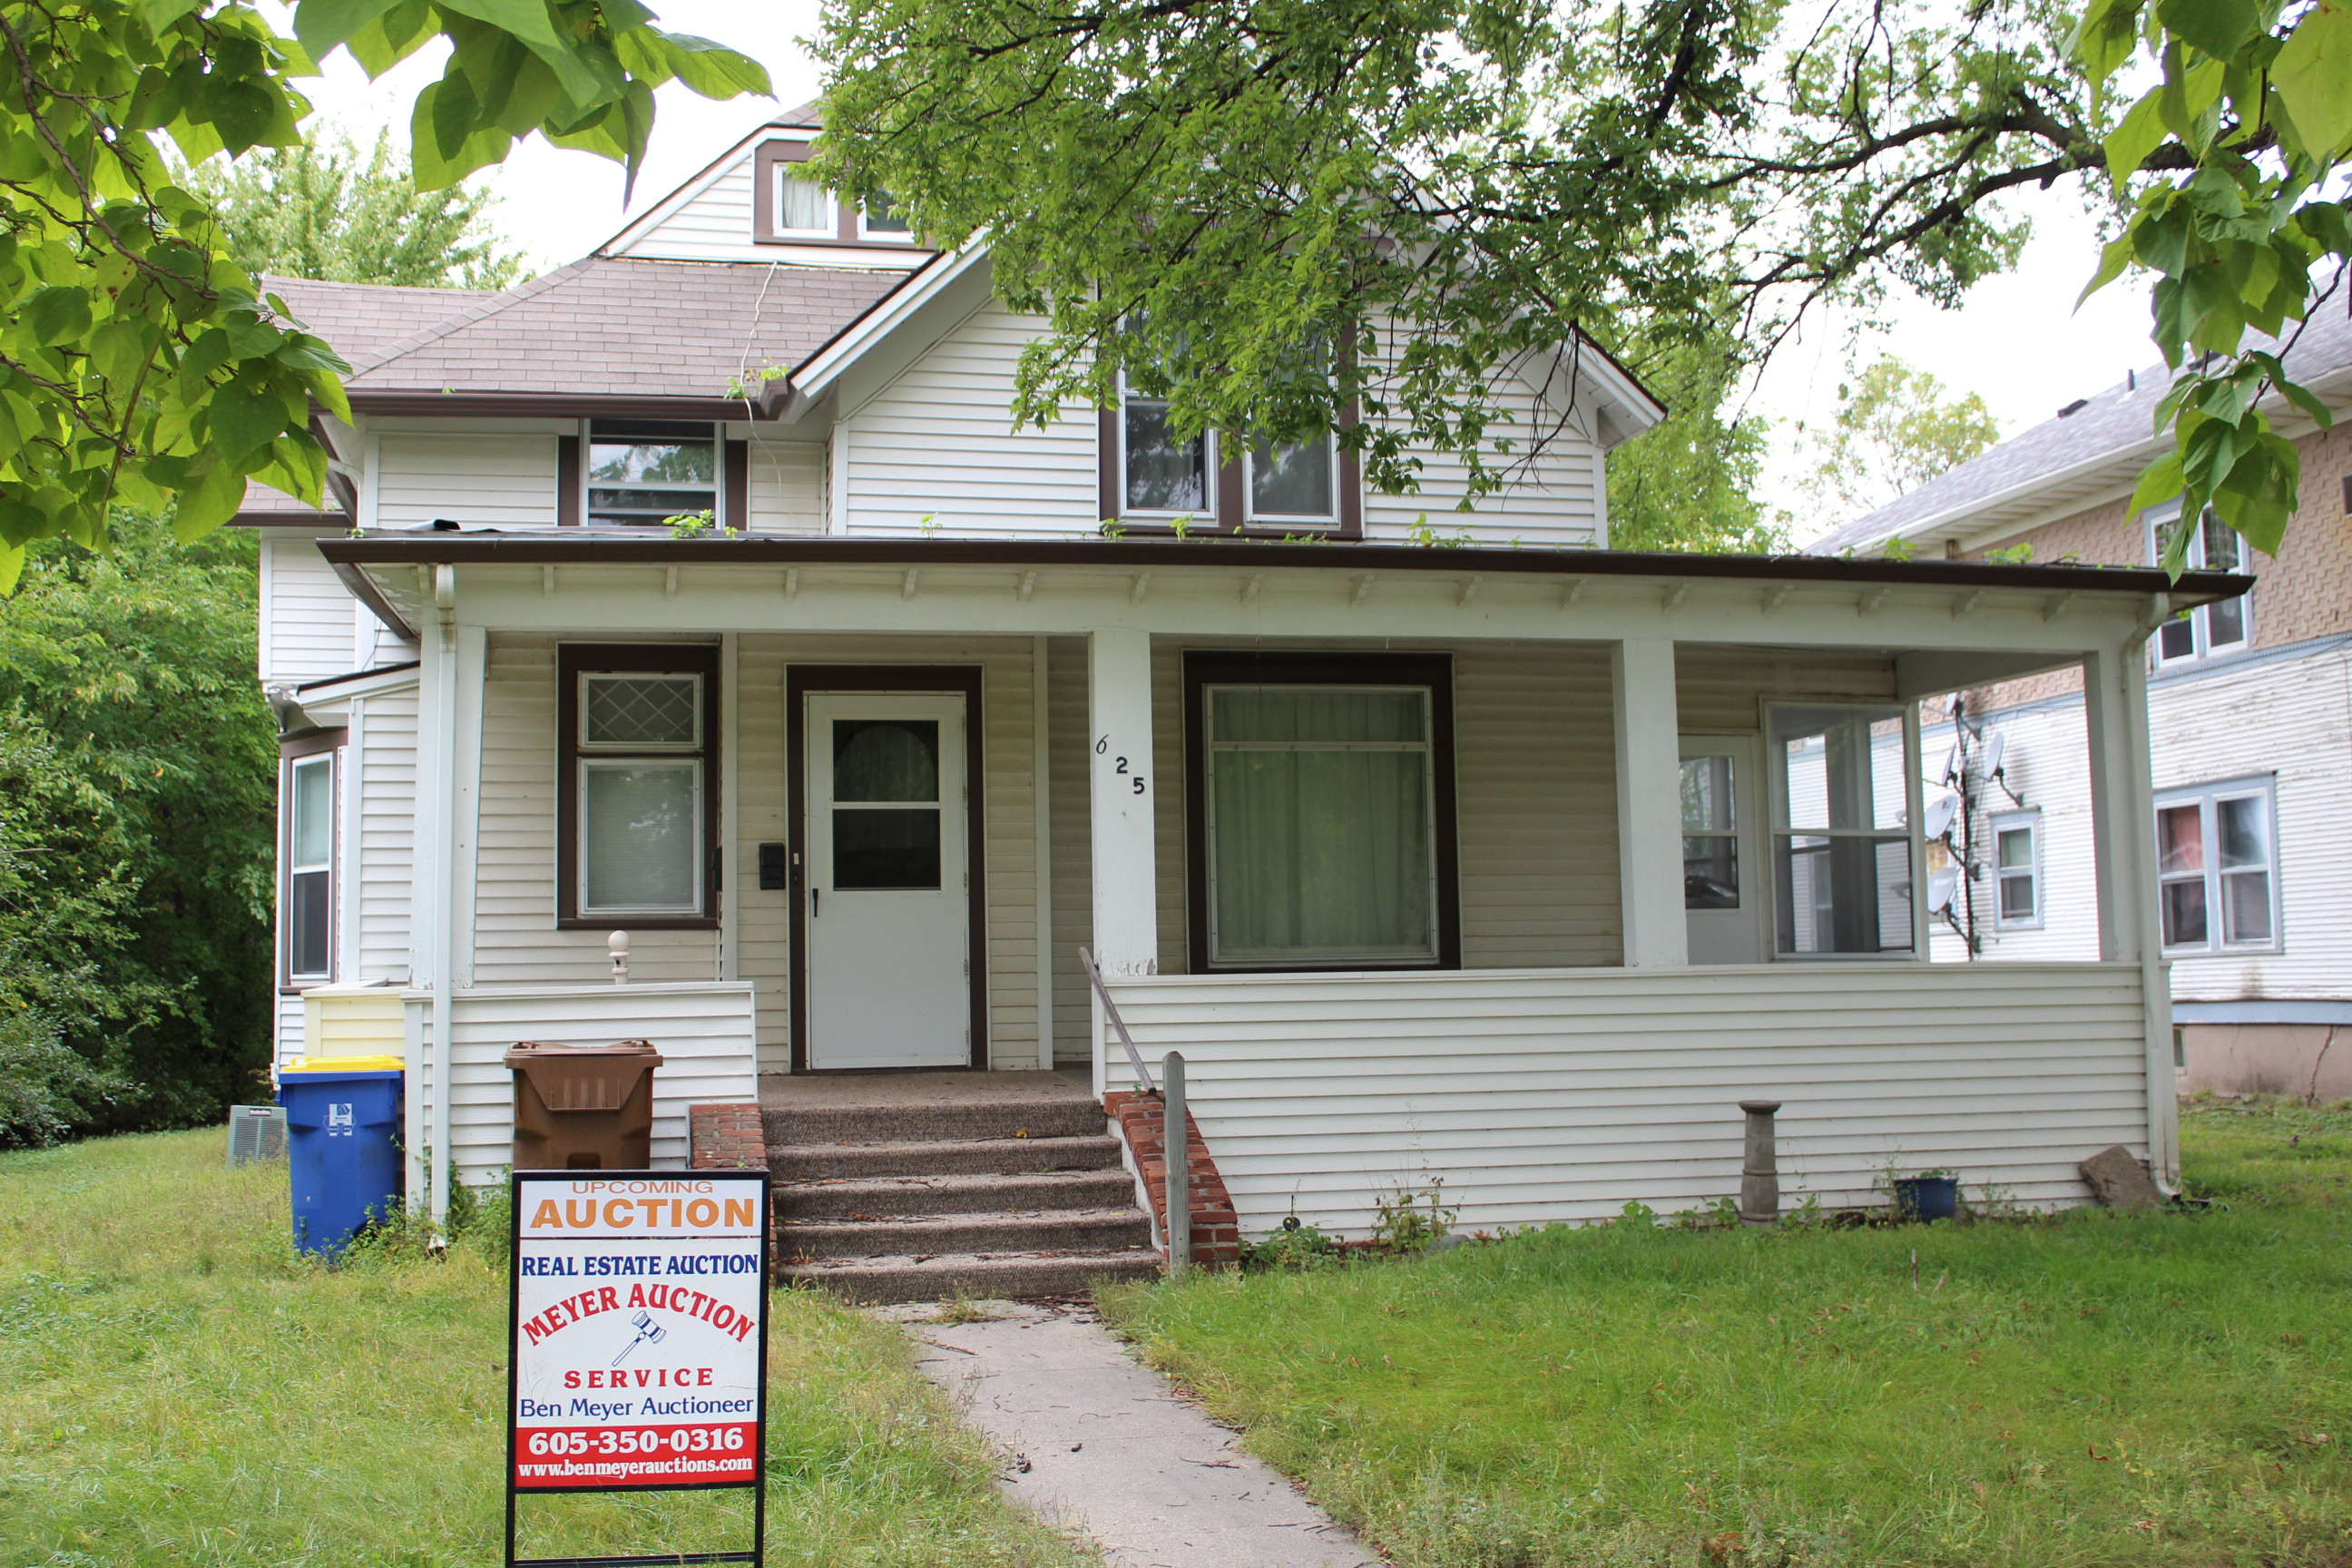 10/23 House Auction – 625 California Ave SW, Huron 5pm CST